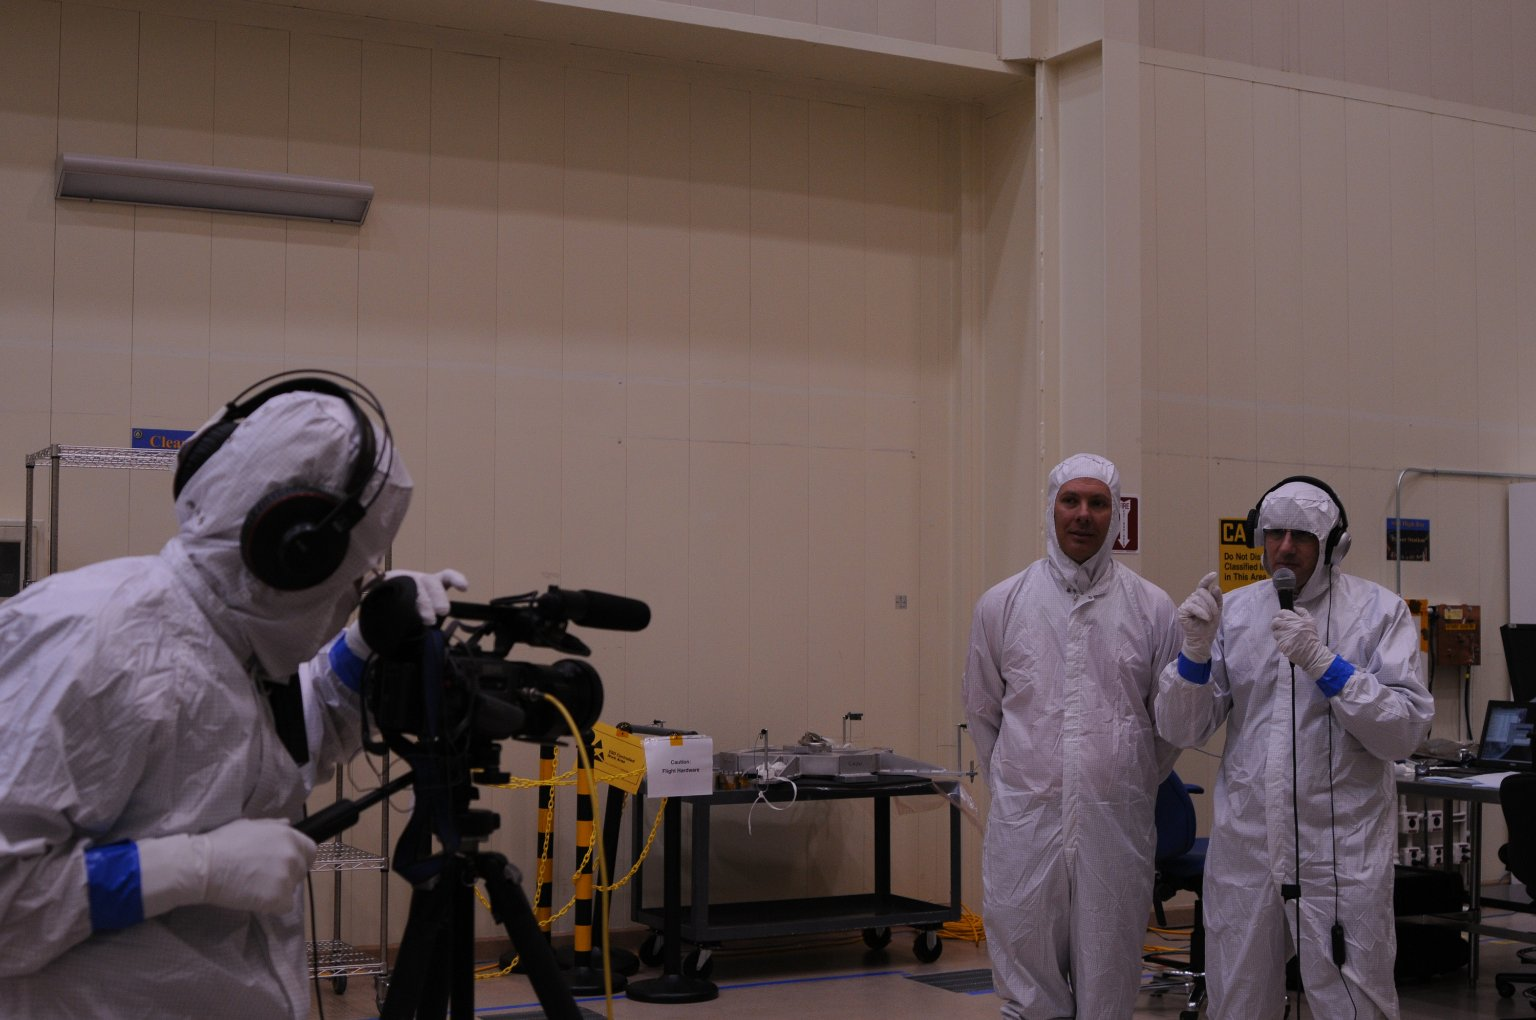 Science in Action with David Grinspoon in Lockheed Martin's clean room